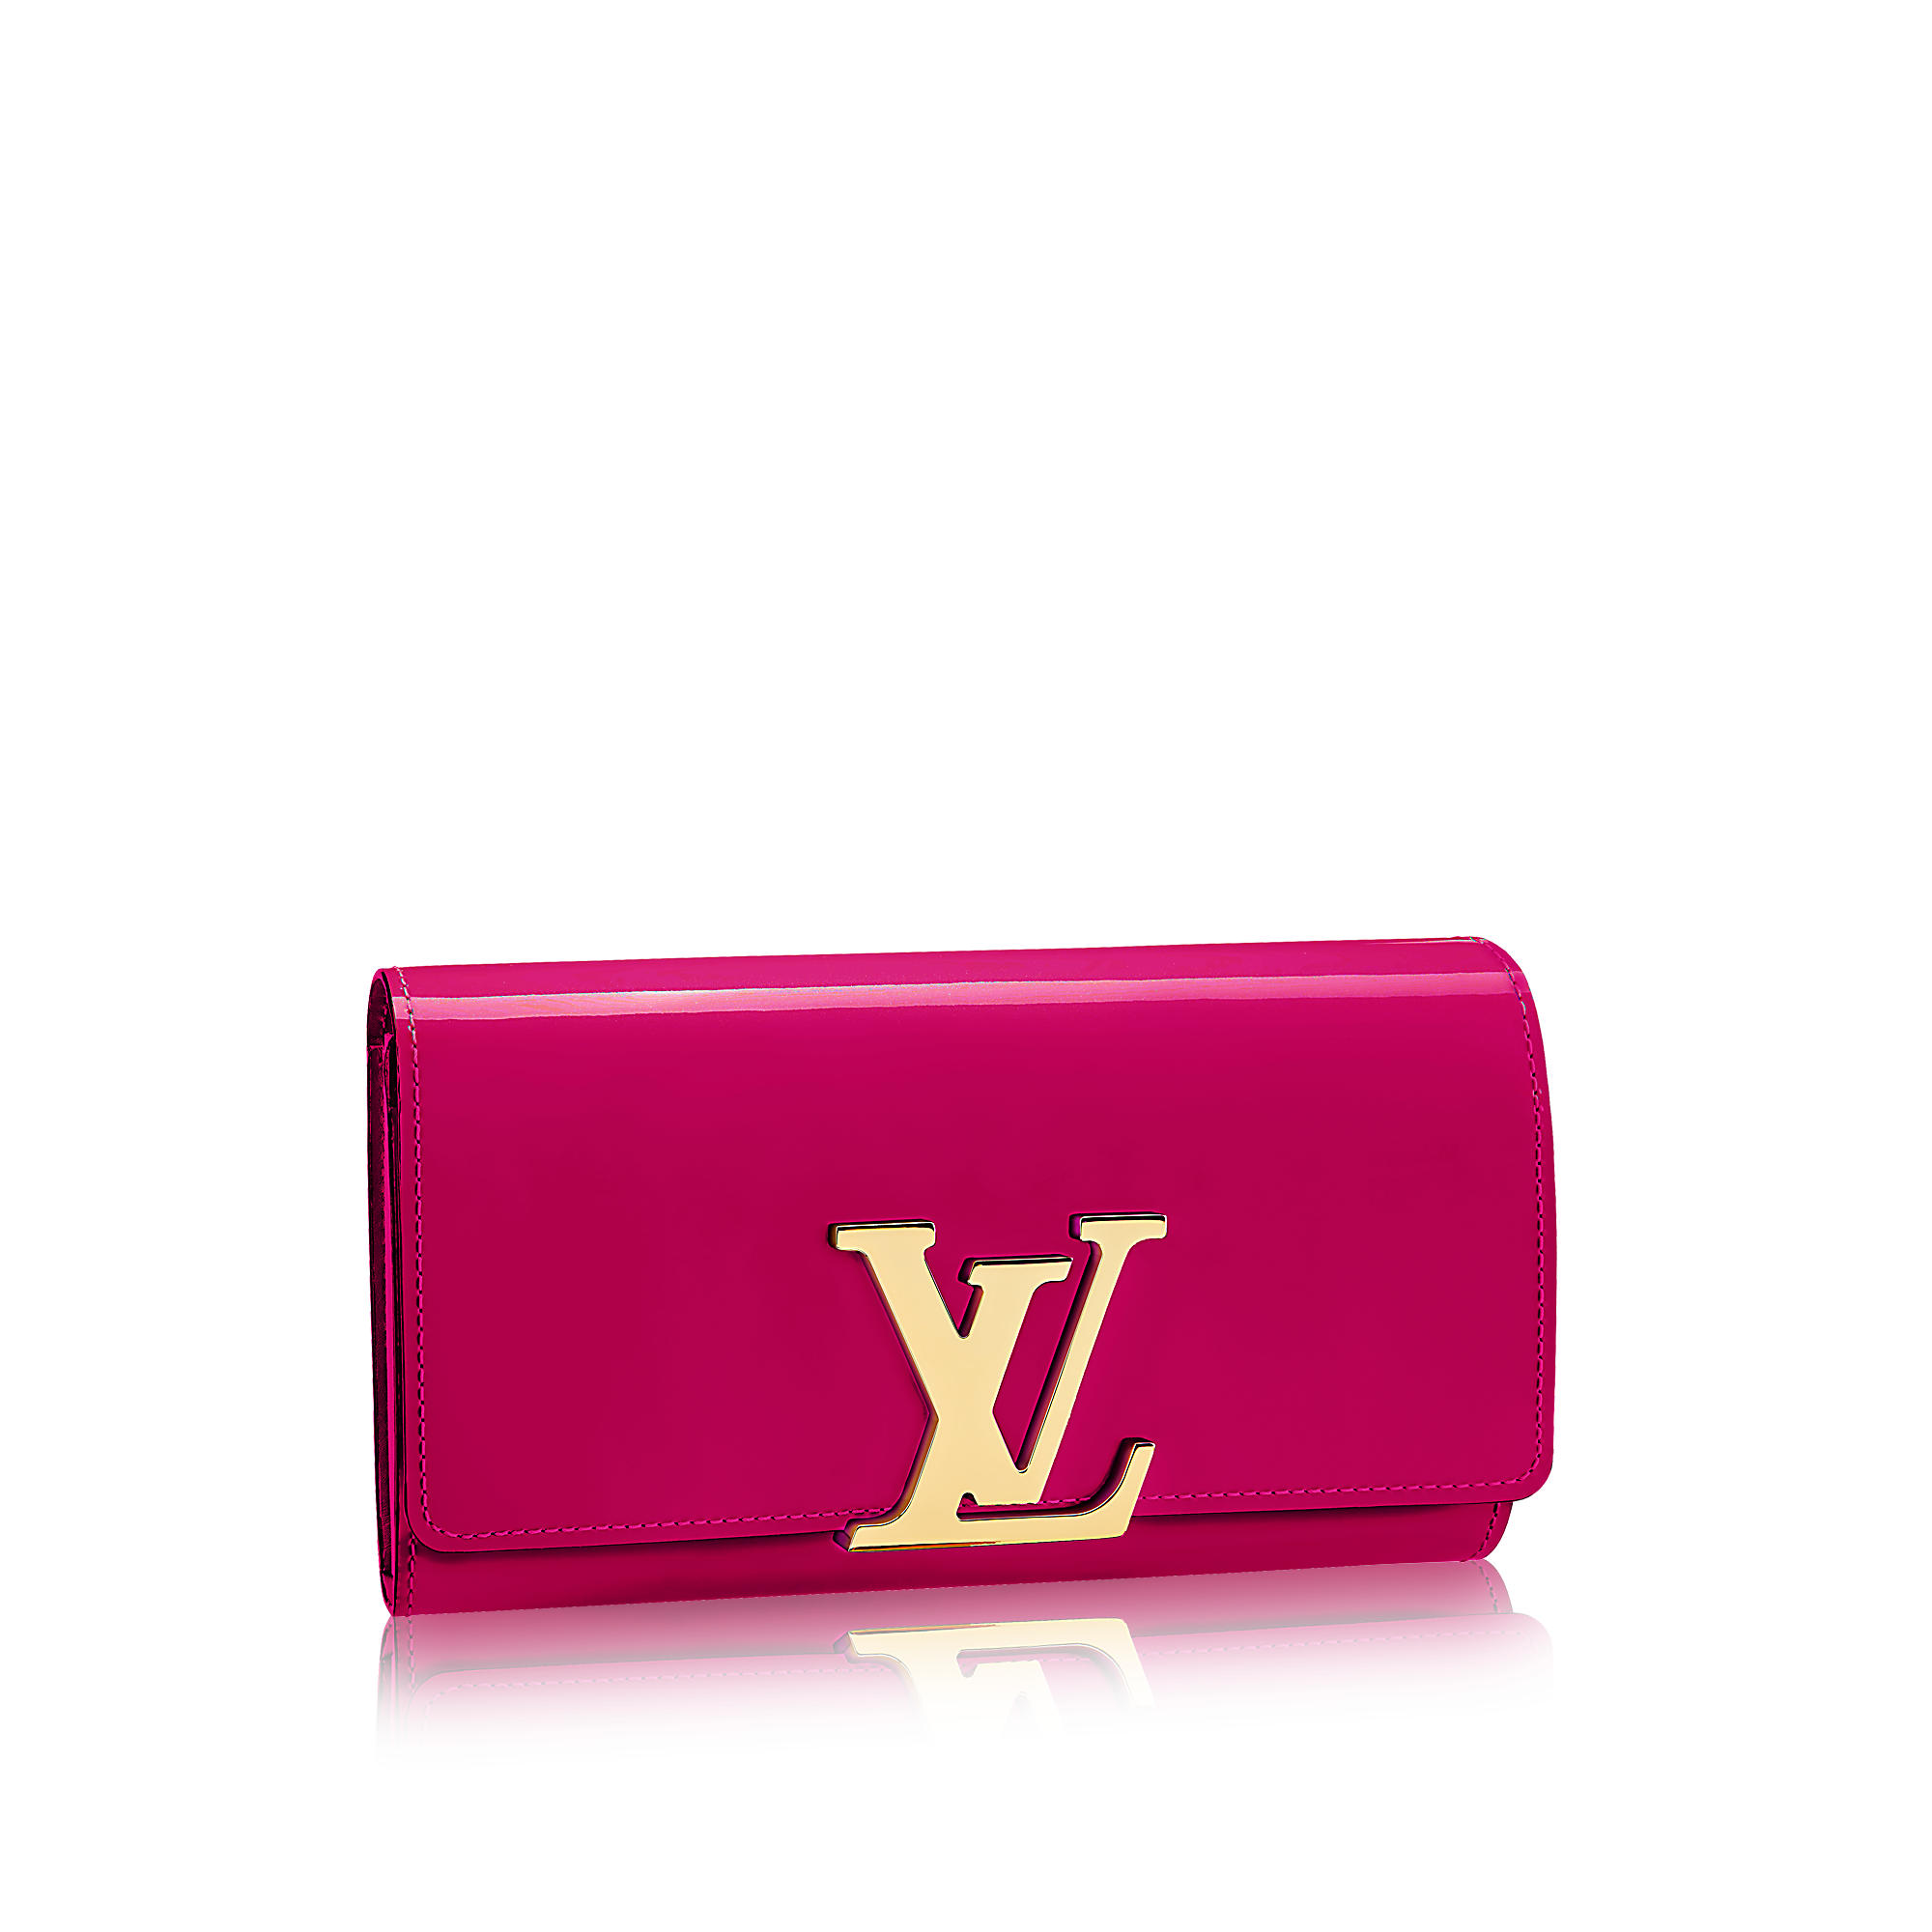 Authentic louis vuitton wallets for women